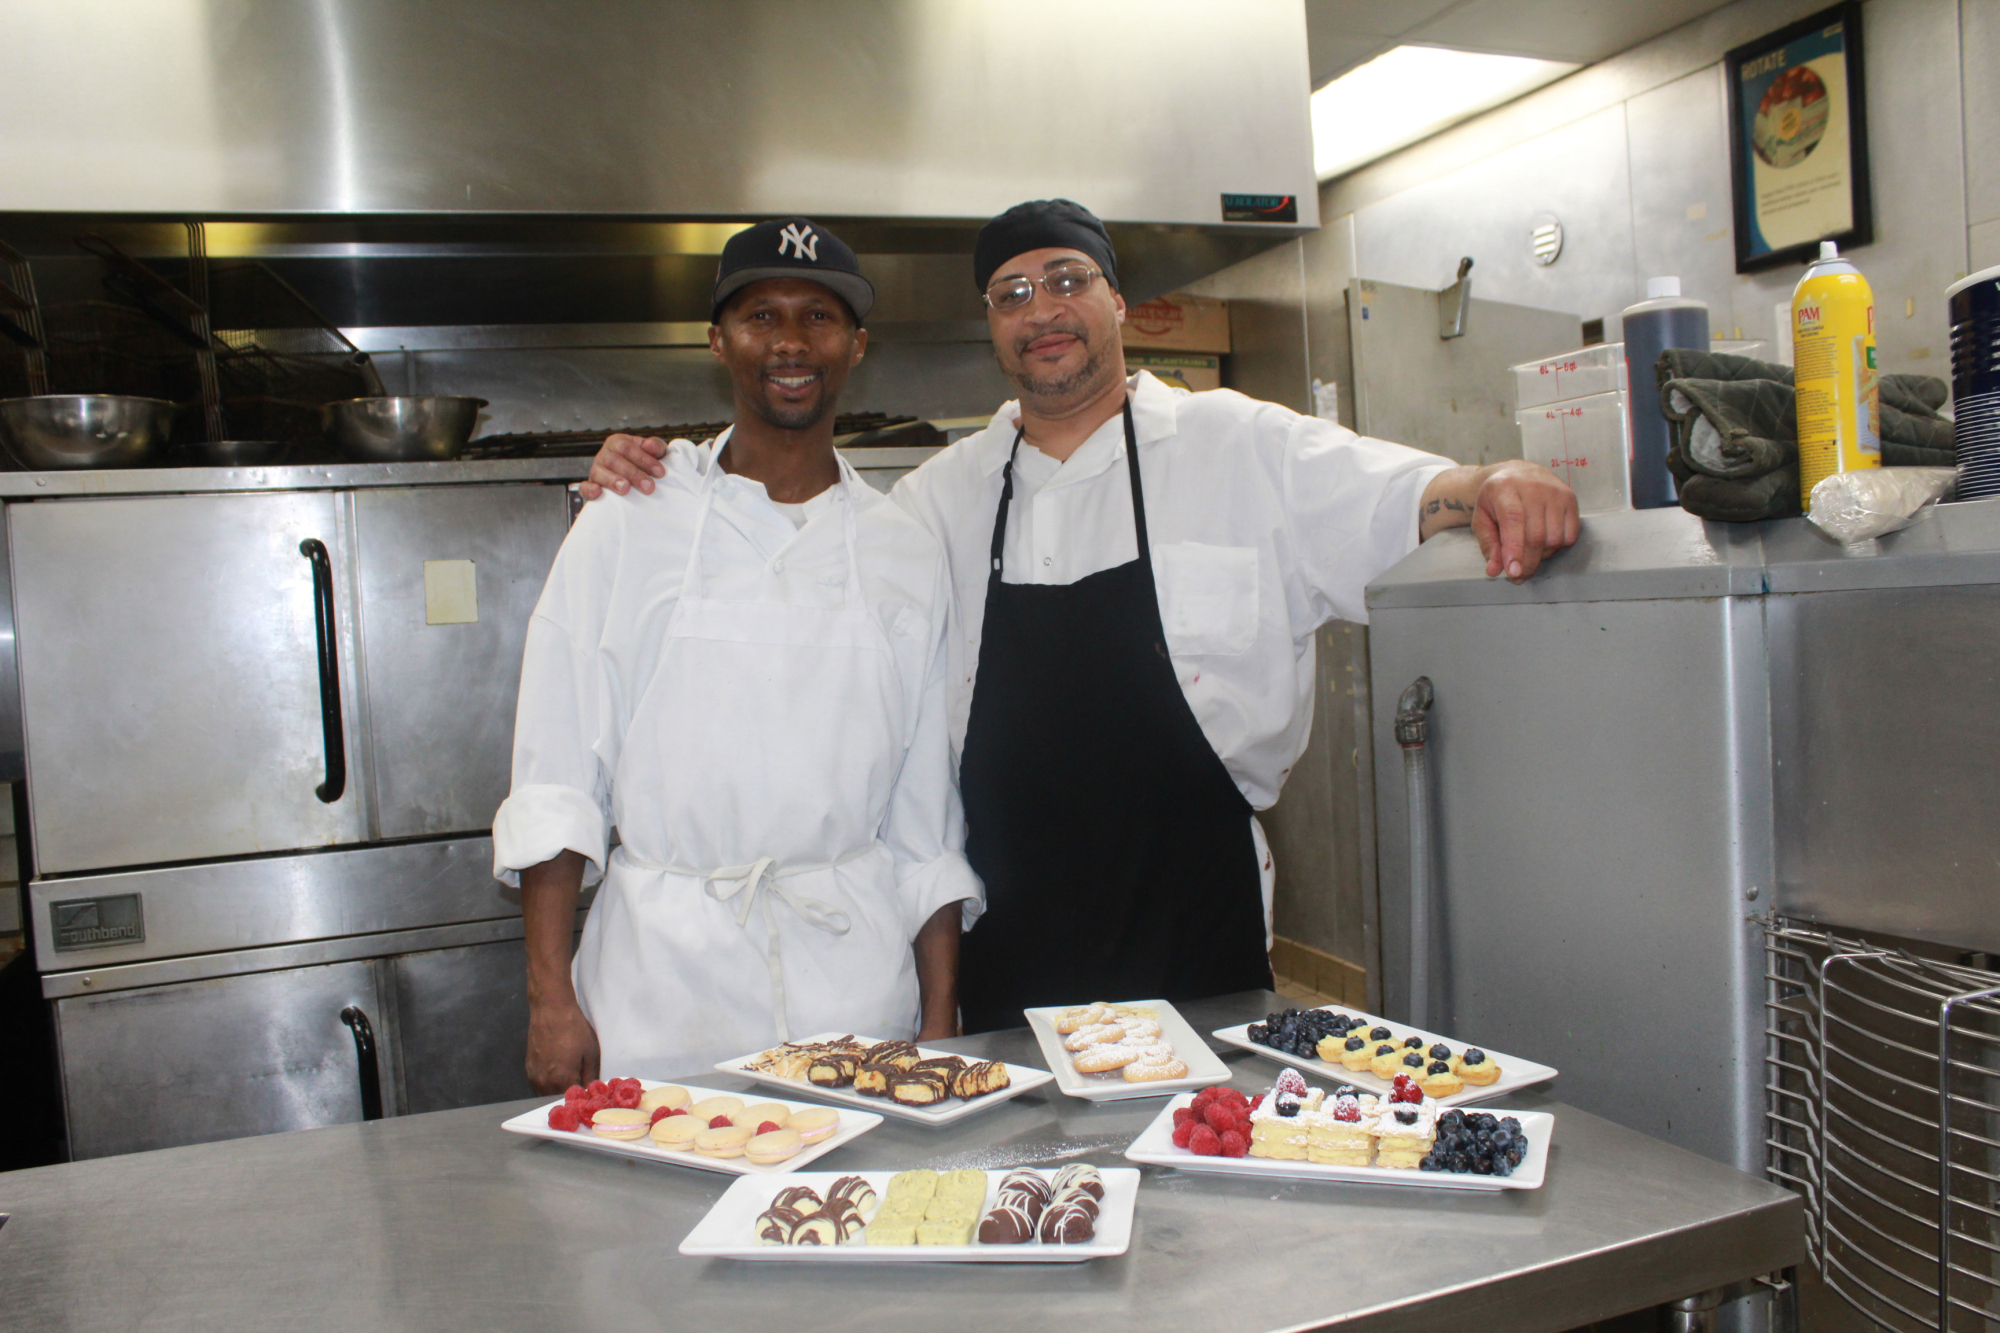 Bed-Stuy Catering Service Gives Former Criminals A Second Chance At Life